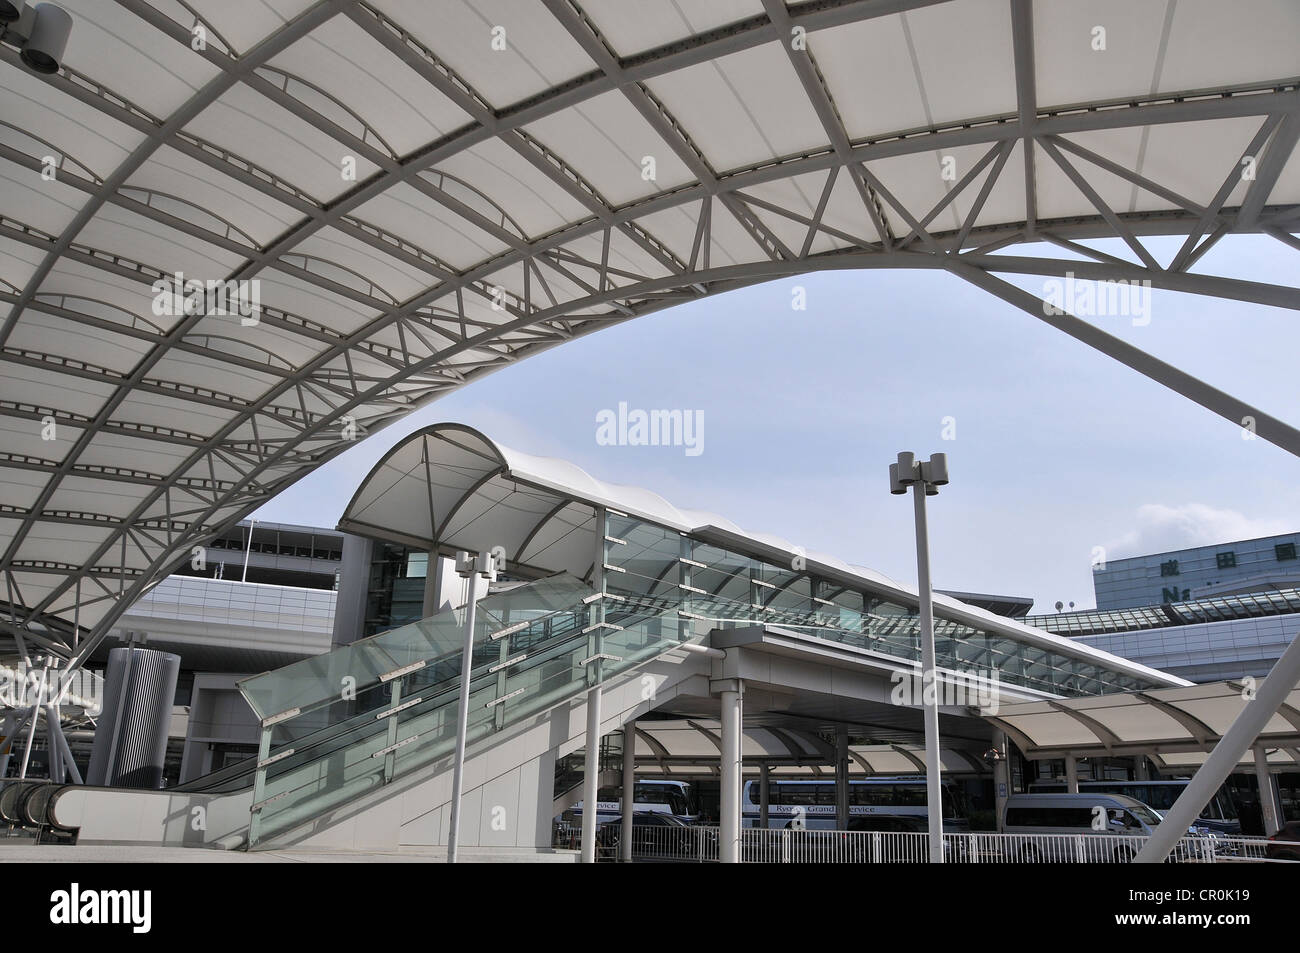 Narita International airport Japan - Stock Image